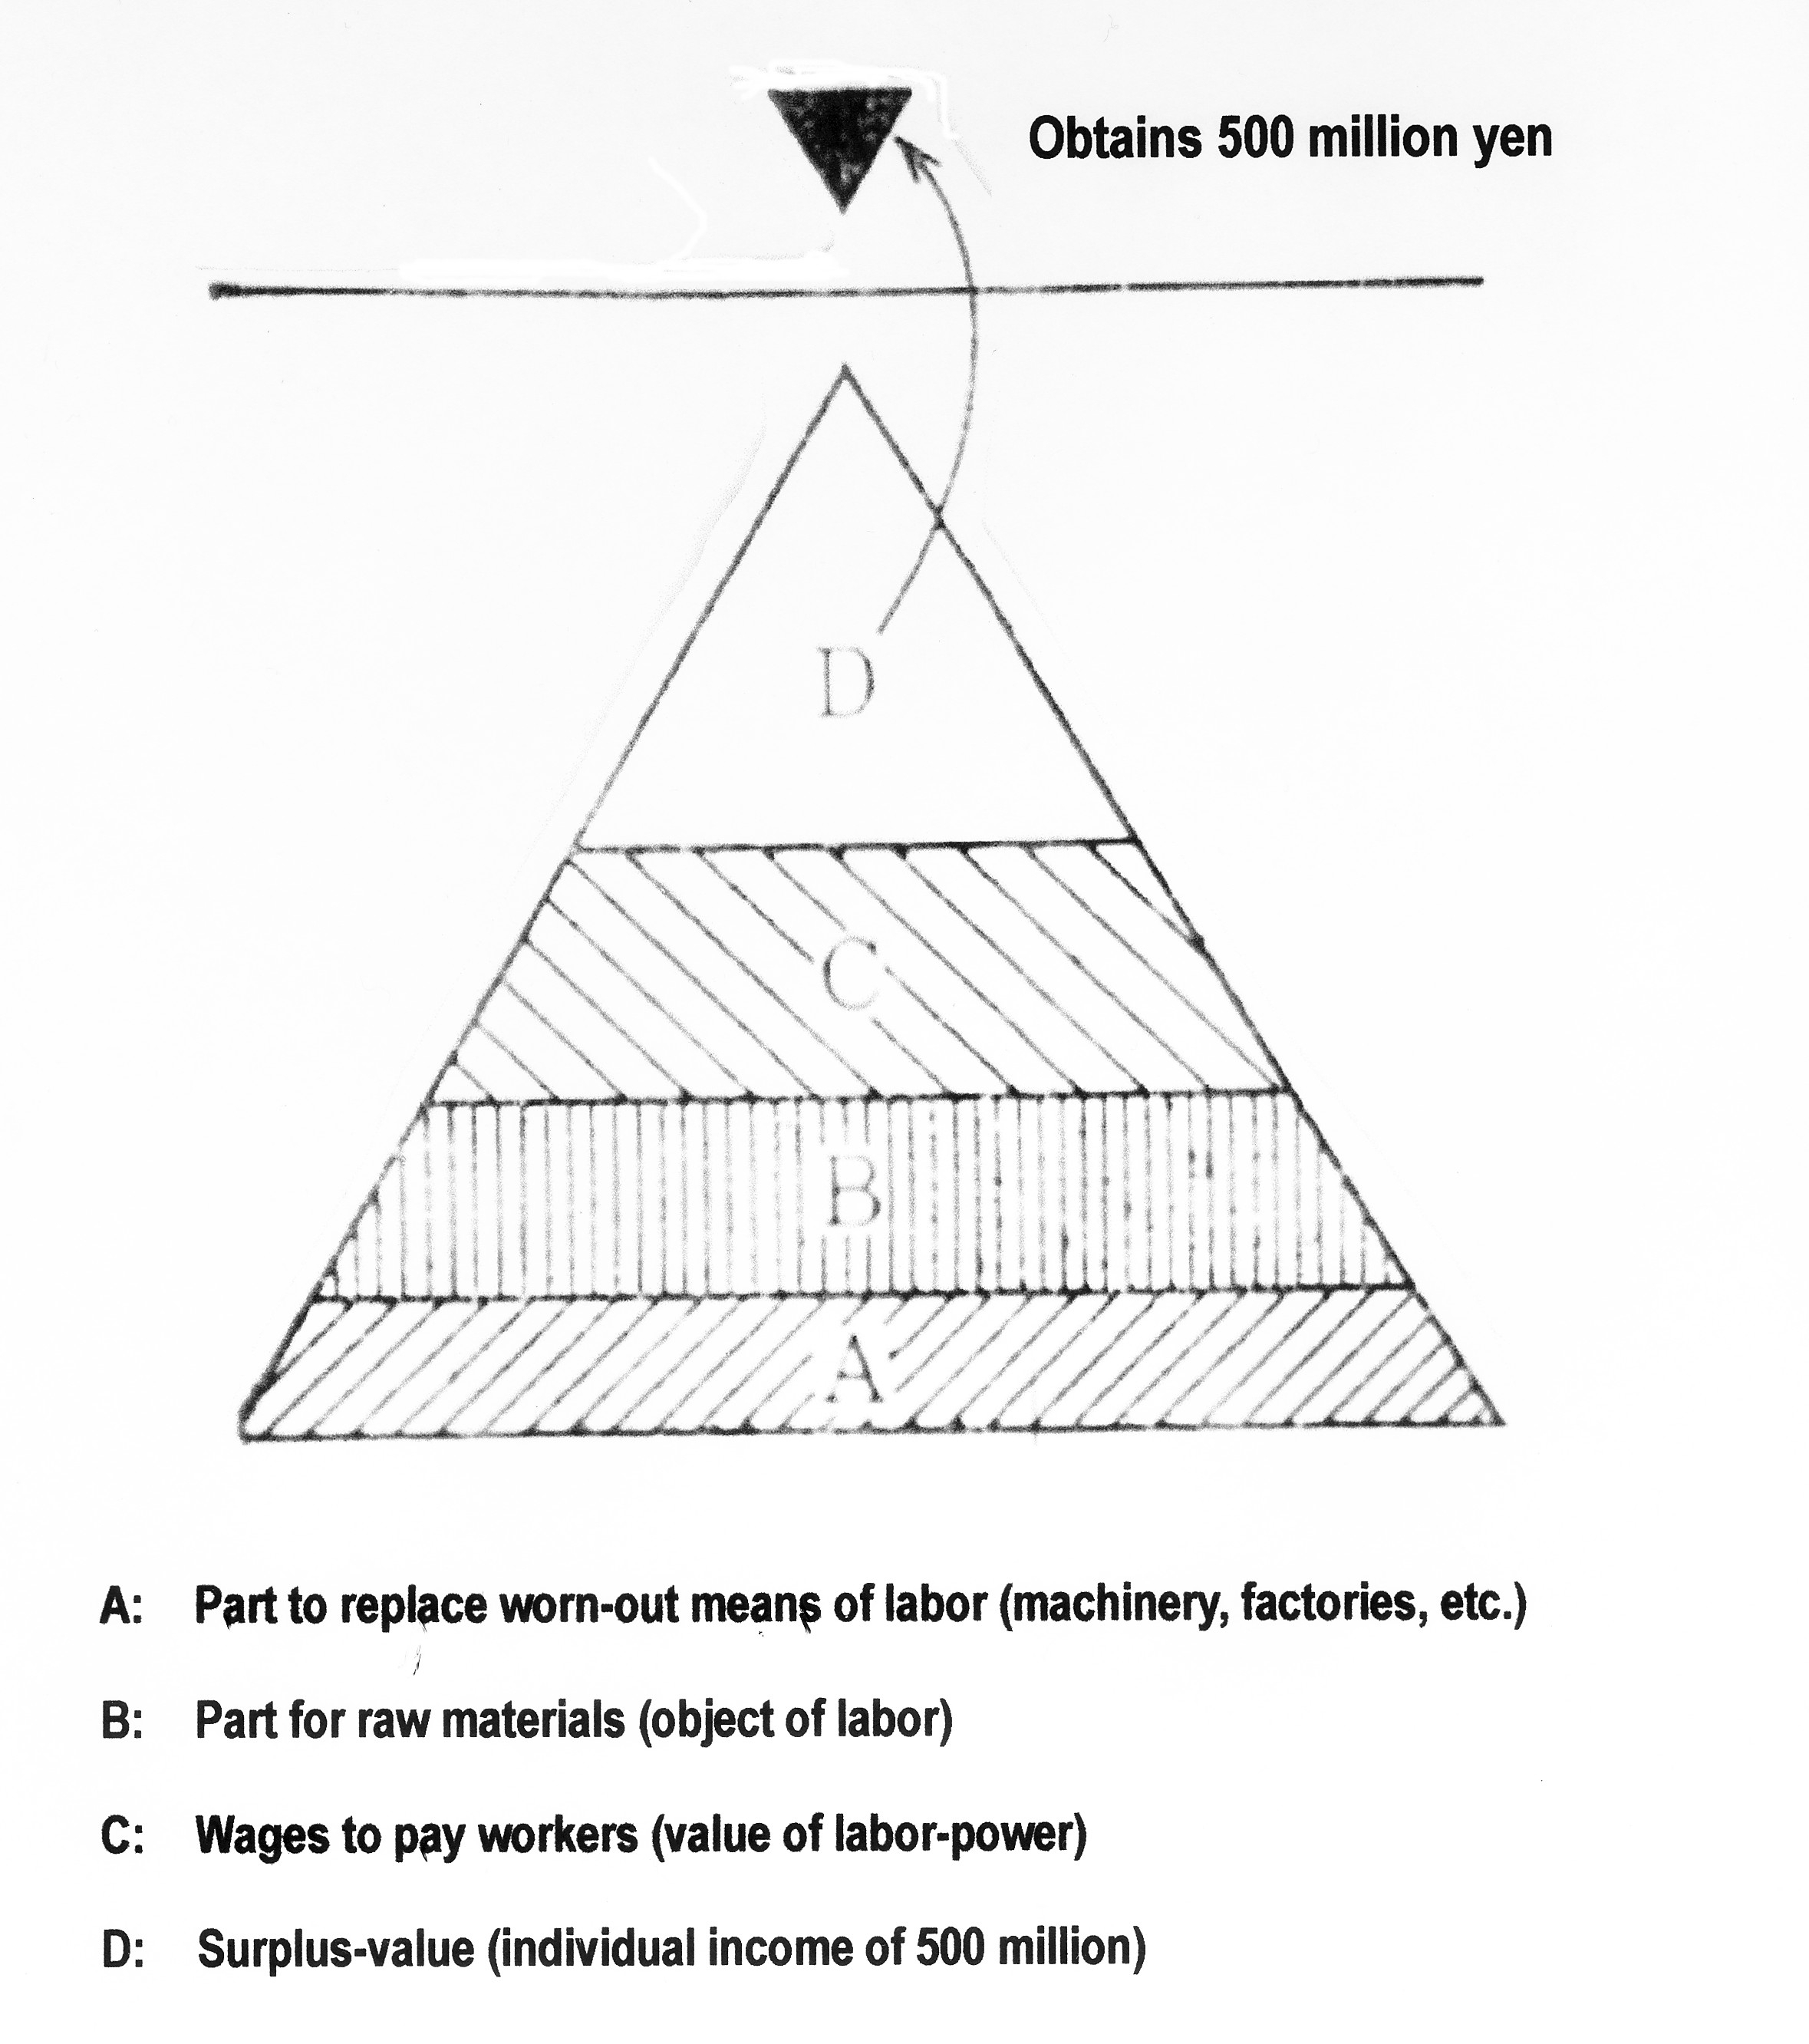 exploitation of labor in the triangular diagram a represents the value to replace the worn out machinery and factories which is deducted from the value of the products in